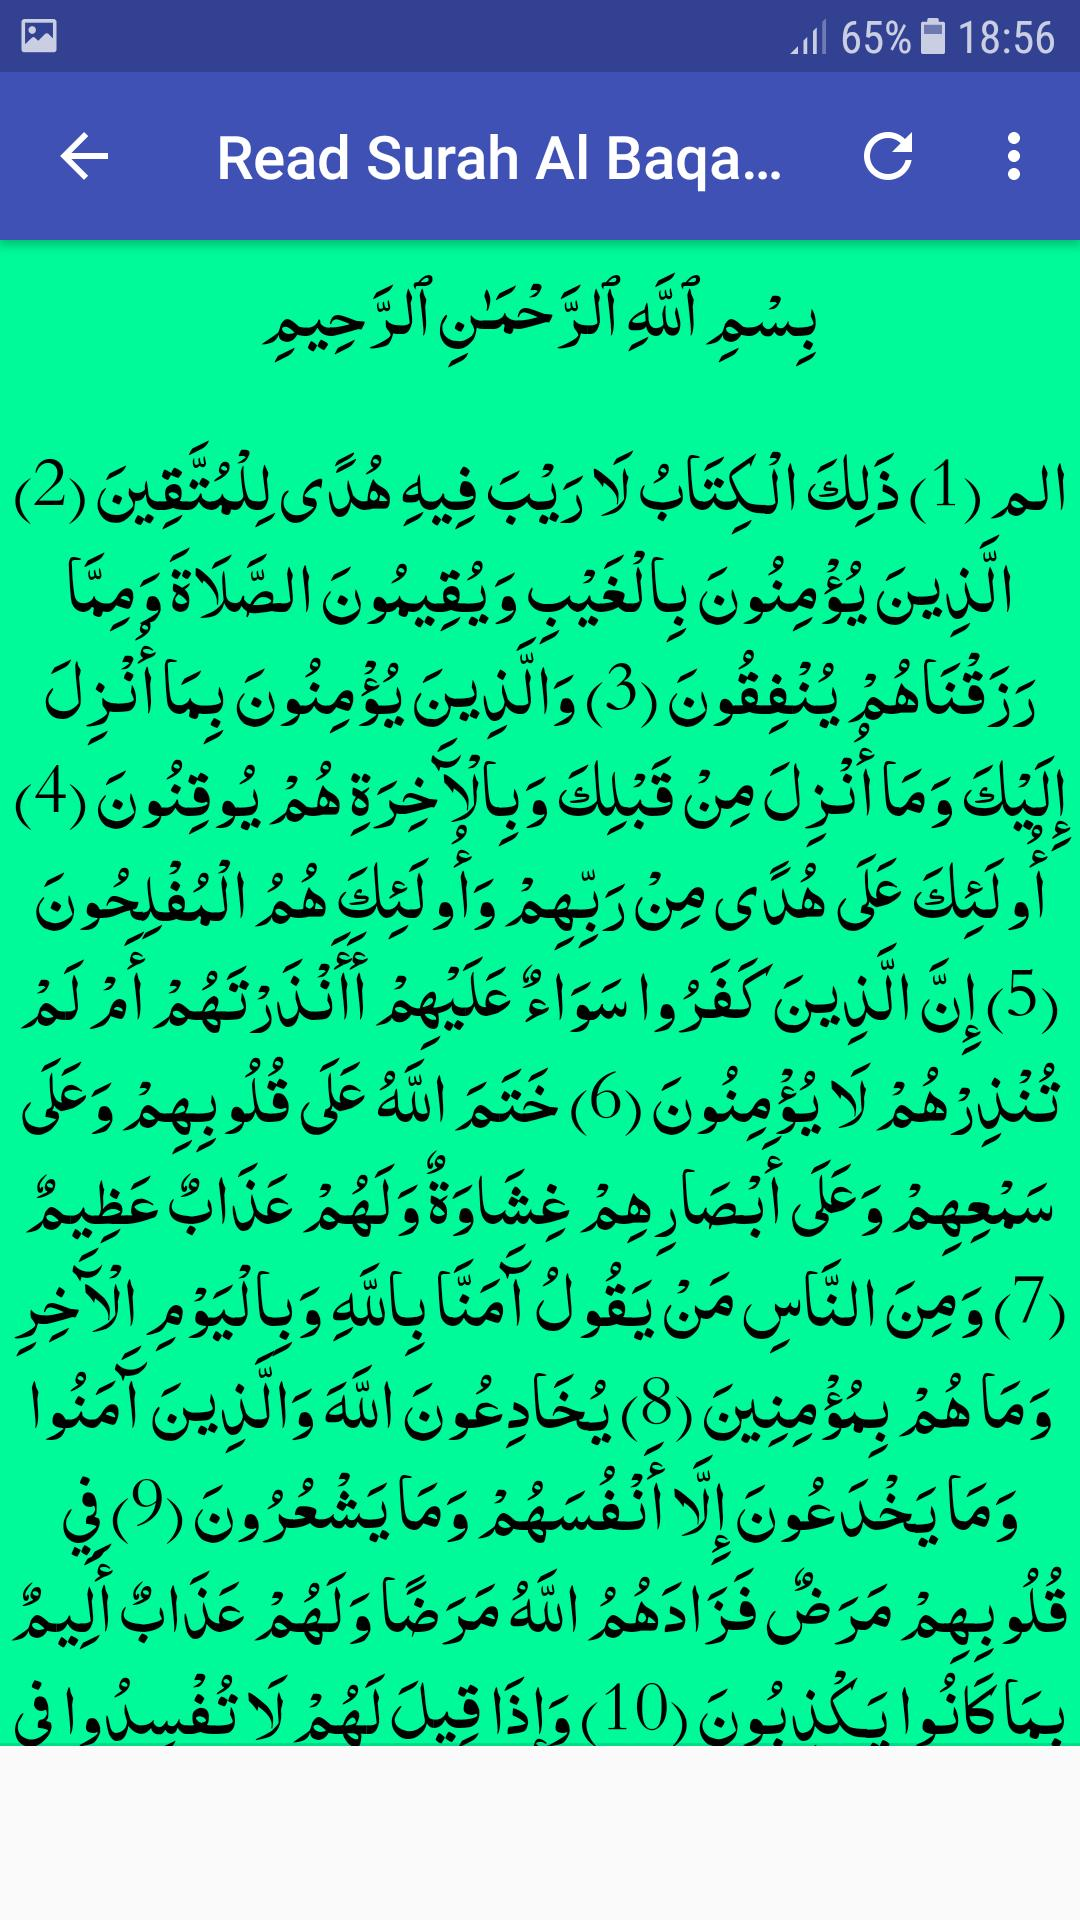 Surah Al Baqarah MP3 Offline for Android - APK Download